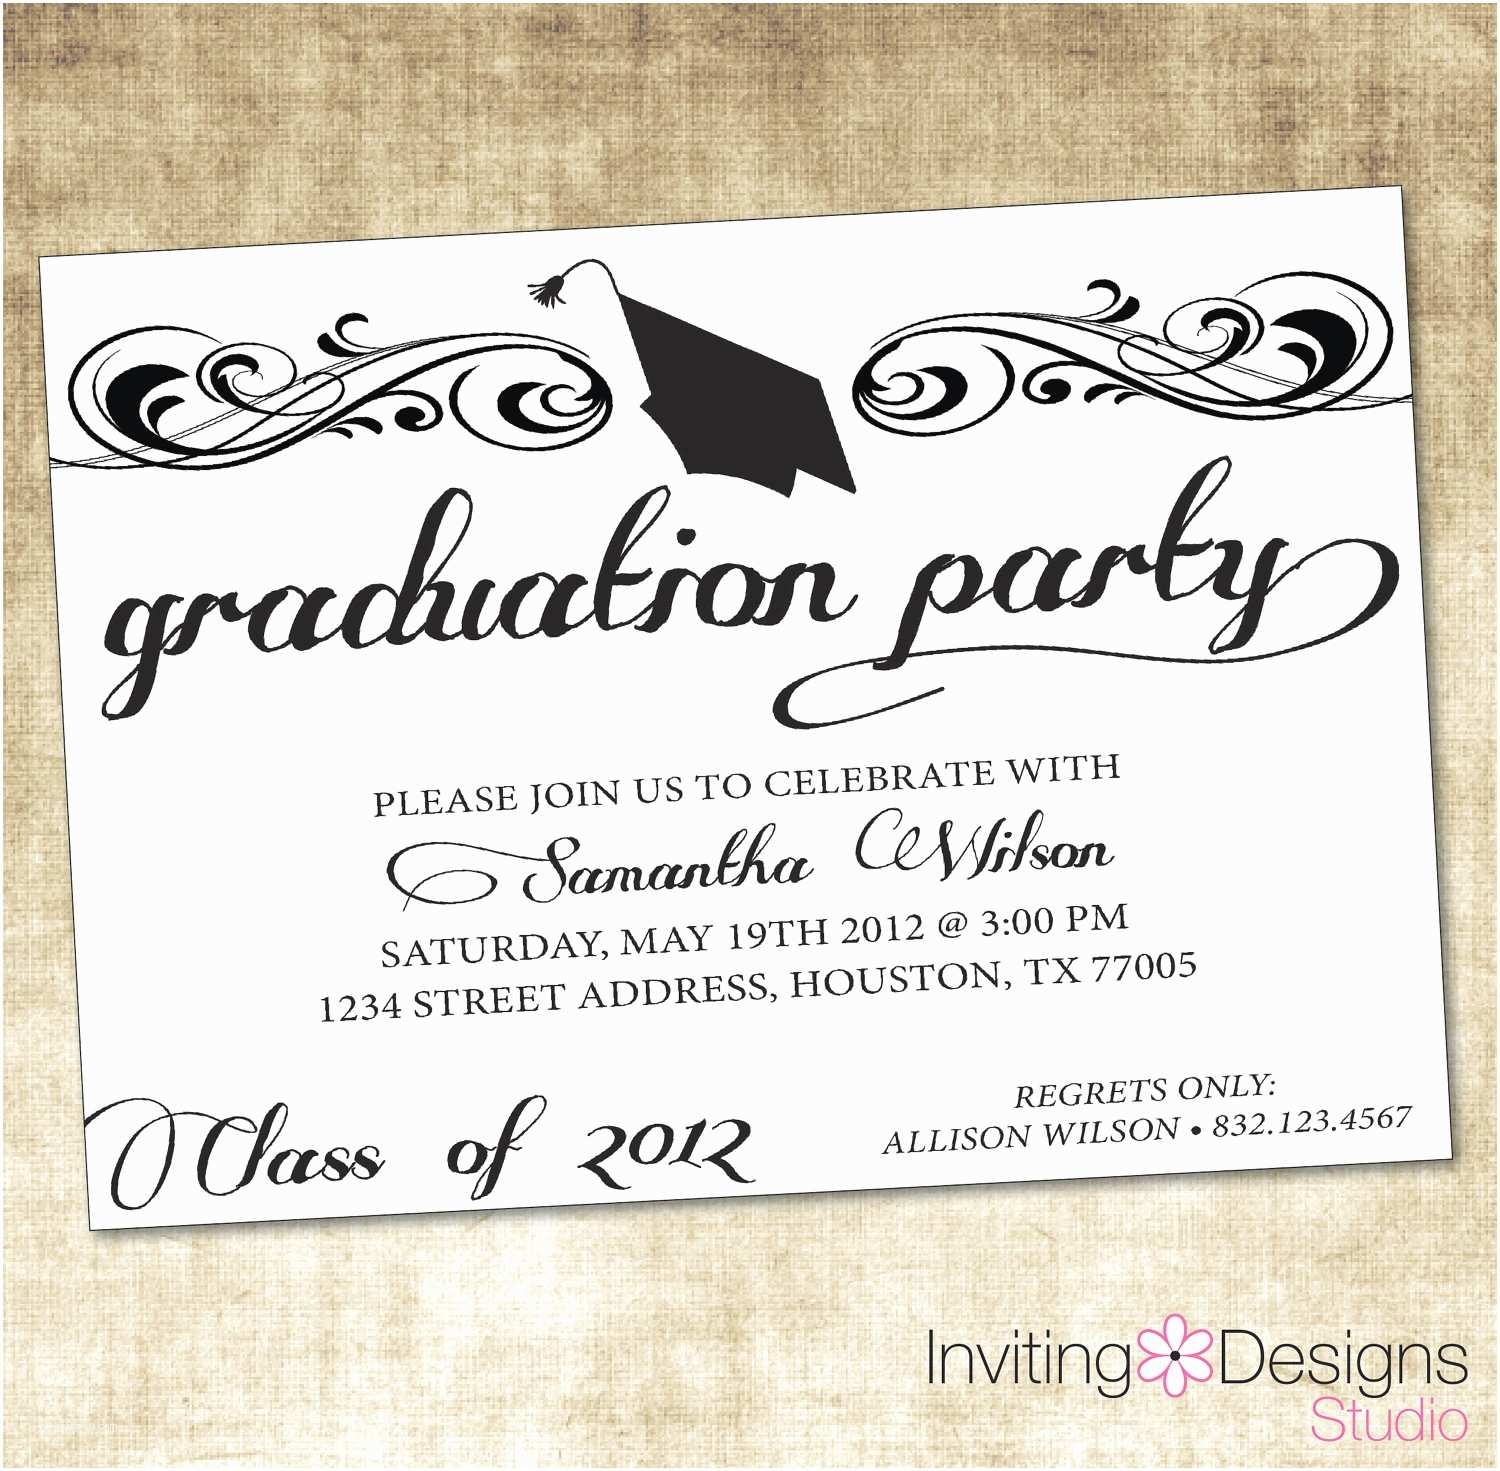 Graduation Party Invitation Templates Unique Ideas for College Graduation Party Invitations